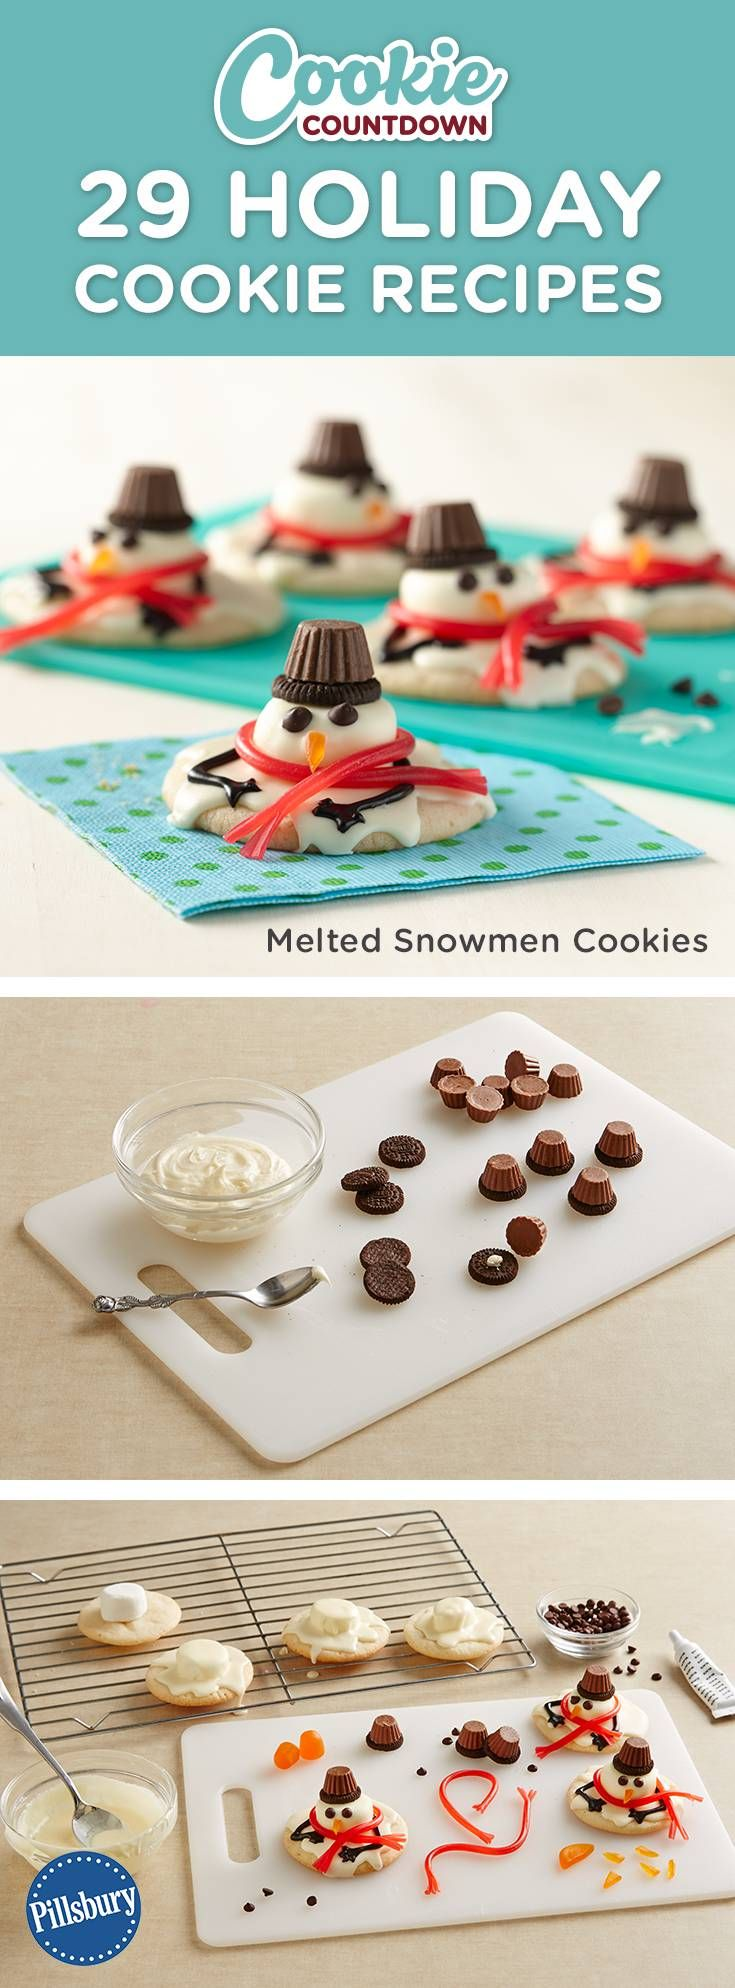 Find this fun Melted Snowman cookie recipe for our Pillsbury Cookie Countdown! You'll see the cutest Christmas cookie recipes. Learn how to decorate your favorite easy recipes. Perfect for if you are hosting a cookie swap, exchange or party.